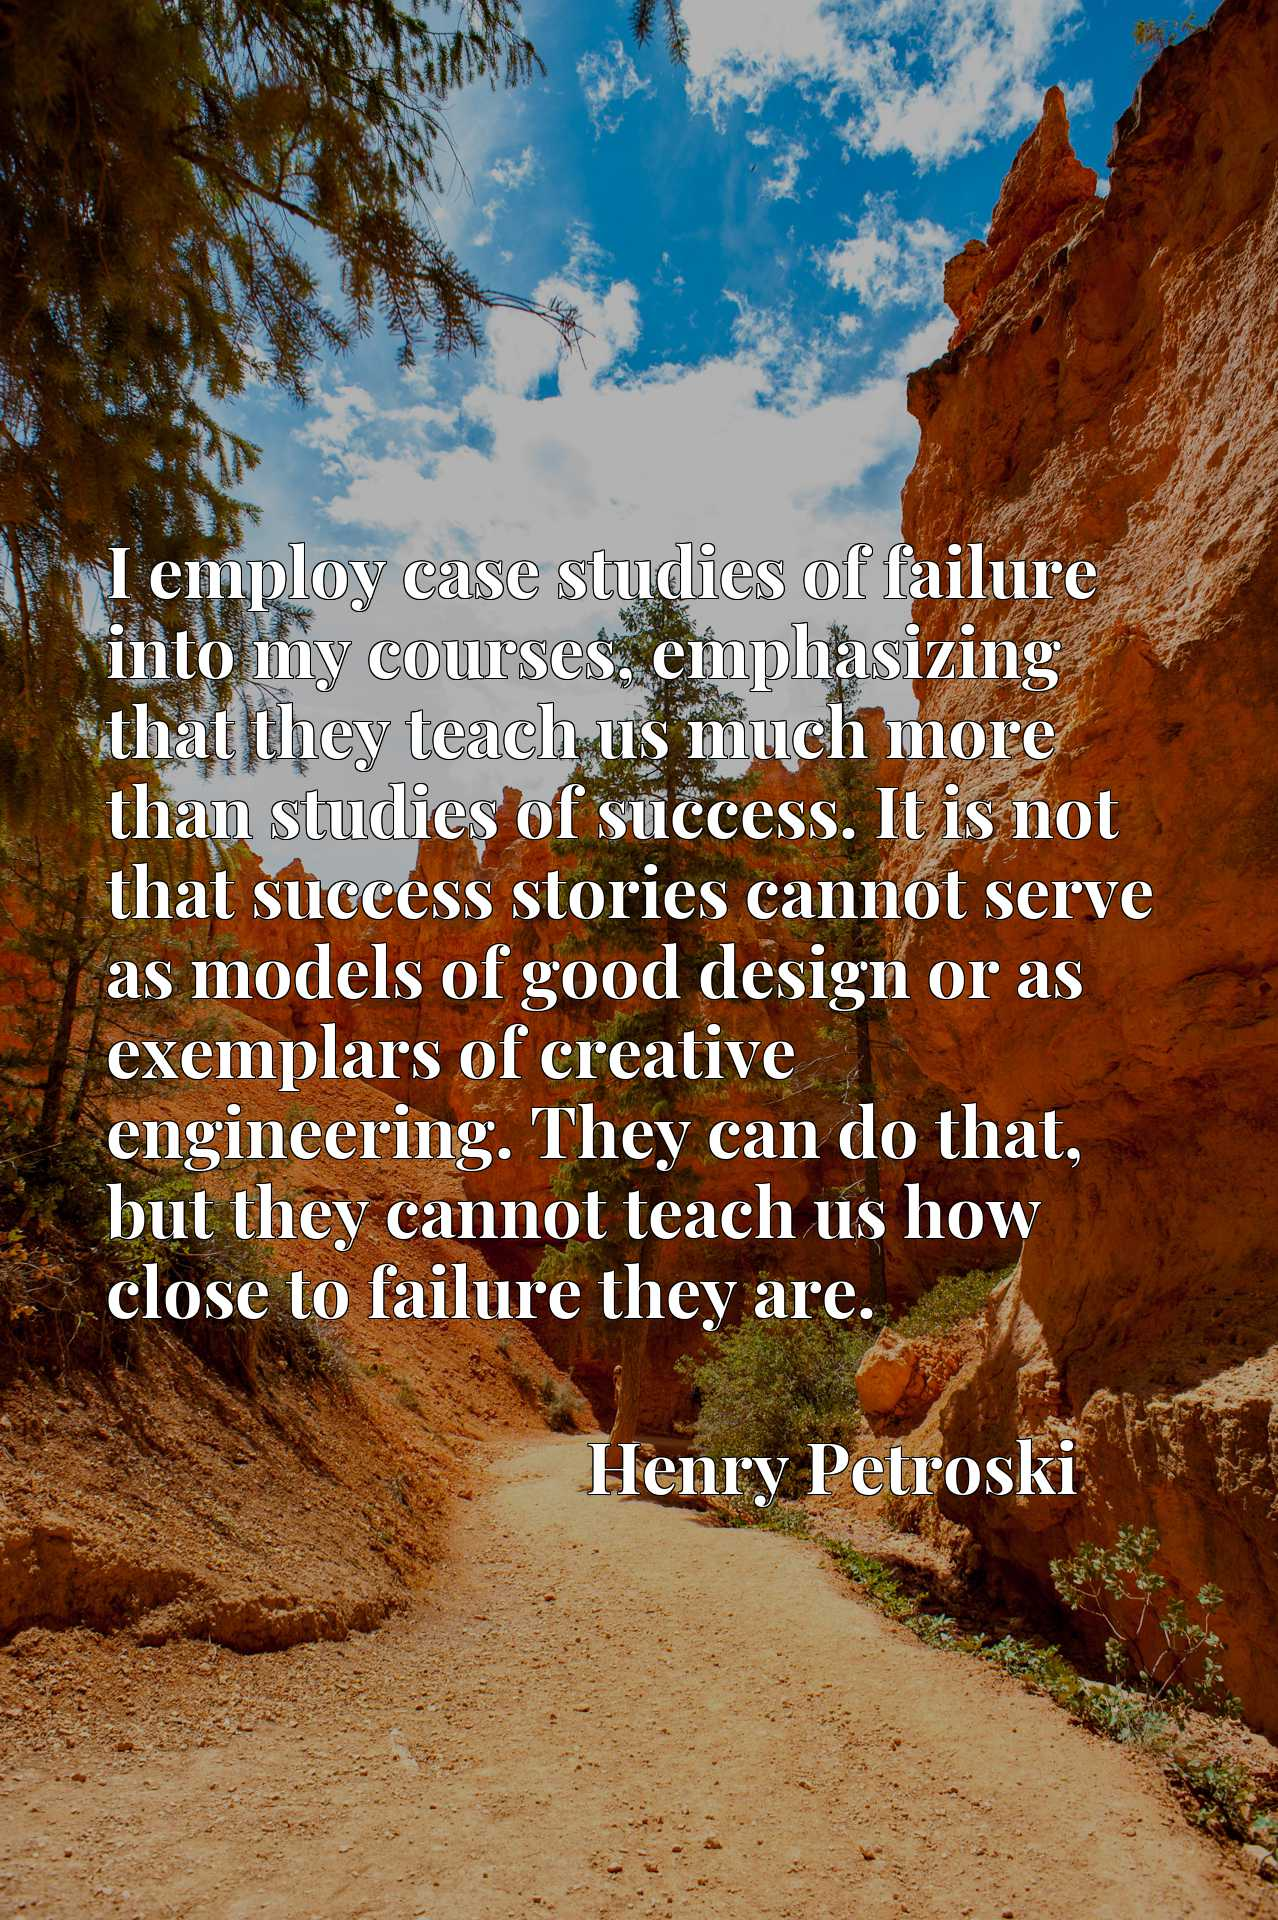 I employ case studies of failure into my courses, emphasizing that they teach us much more than studies of success. It is not that success stories cannot serve as models of good design or as exemplars of creative engineering. They can do that, but they cannot teach us how close to failure they are.